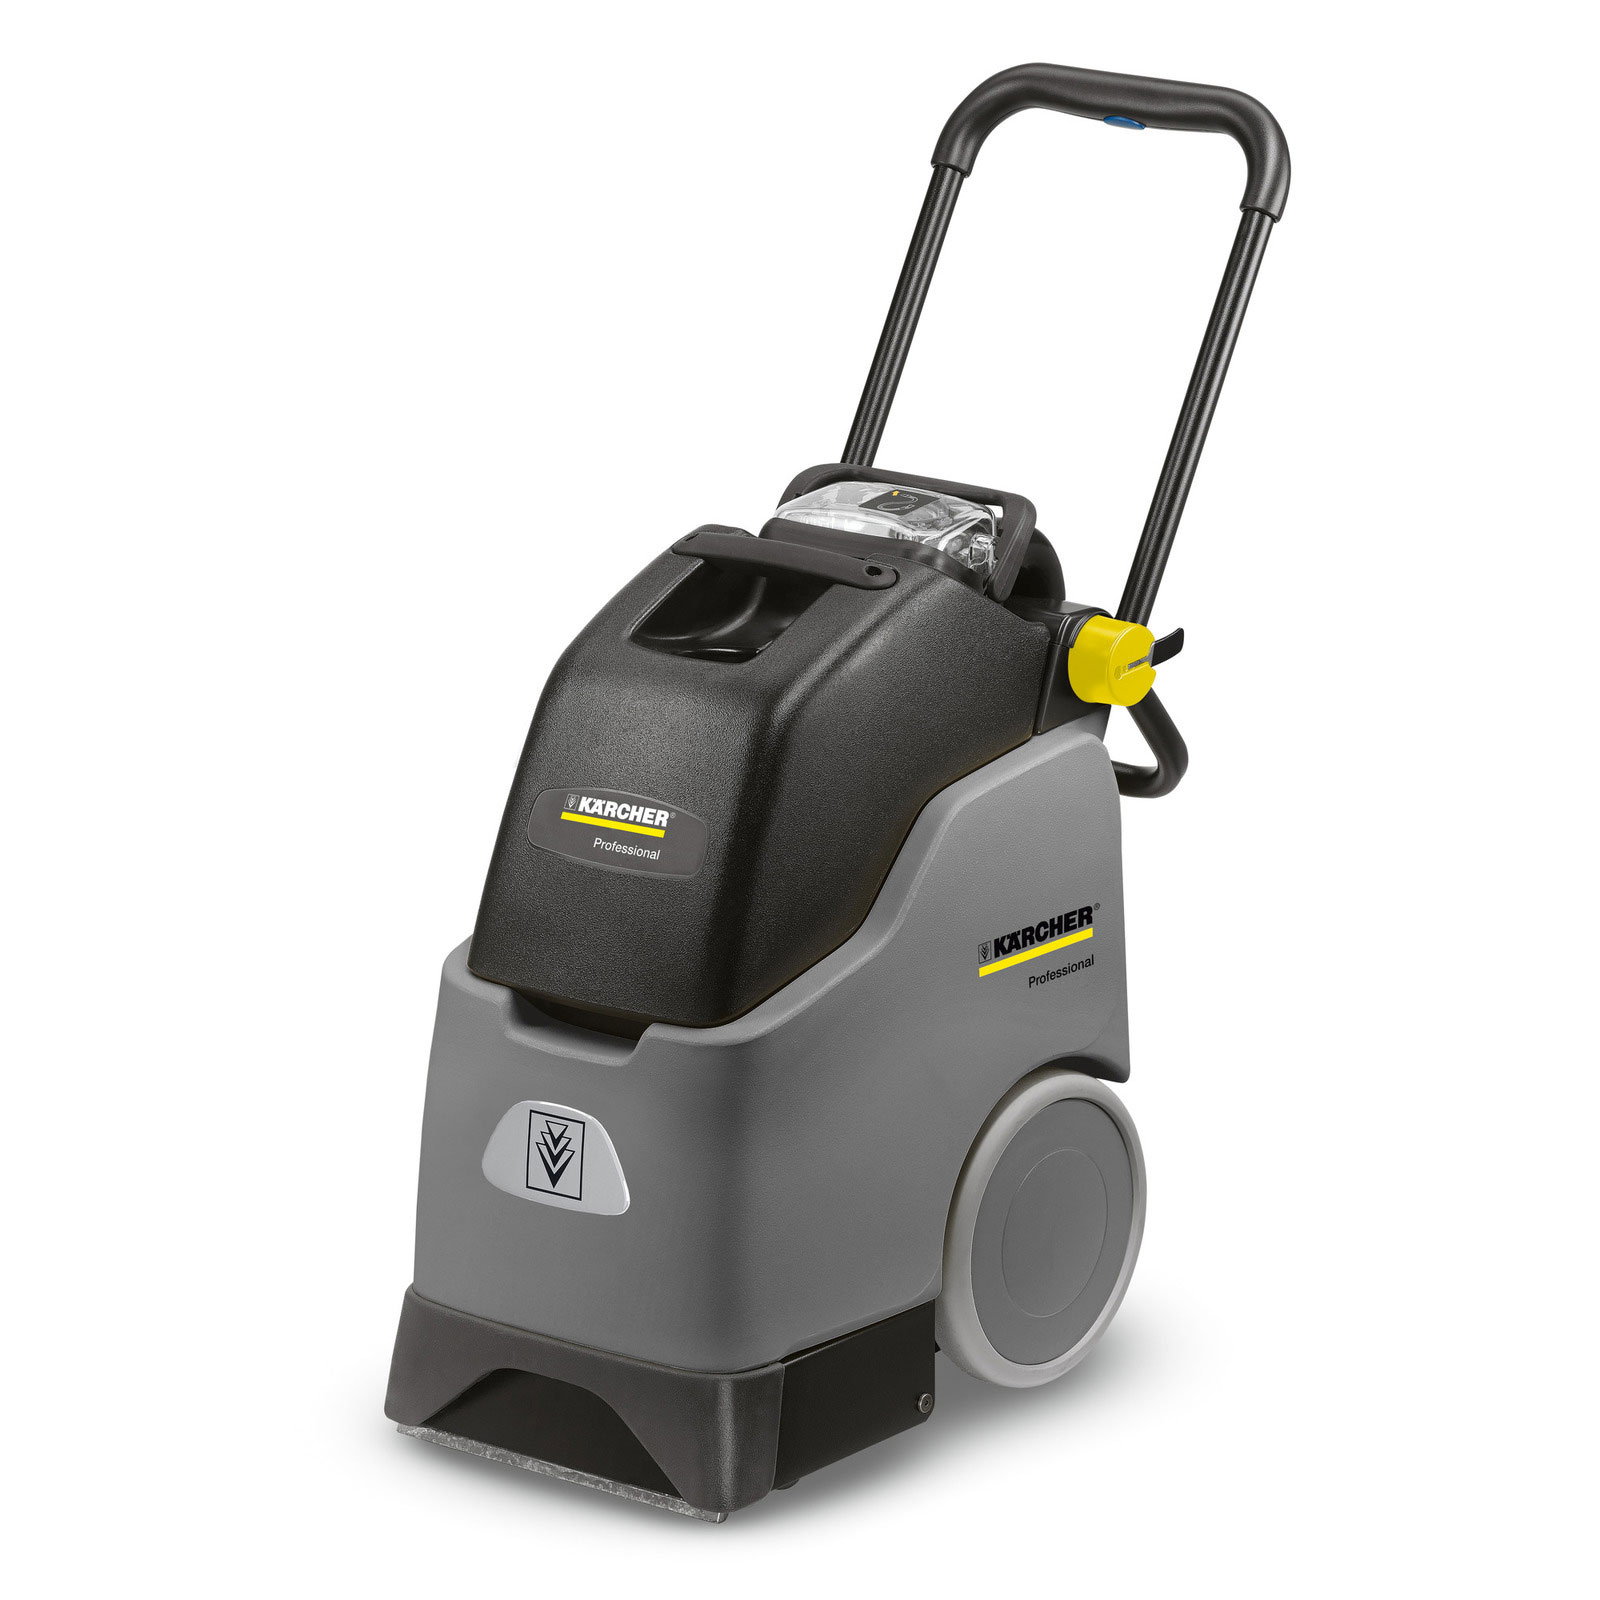 Karcher BRC 30/15 C Windsor Mini Pro 12 In Self Contained 4Gal Carpet Cleaning Machine 1.008-058.0 Replaces 1.008-039.0 FREE Shipping